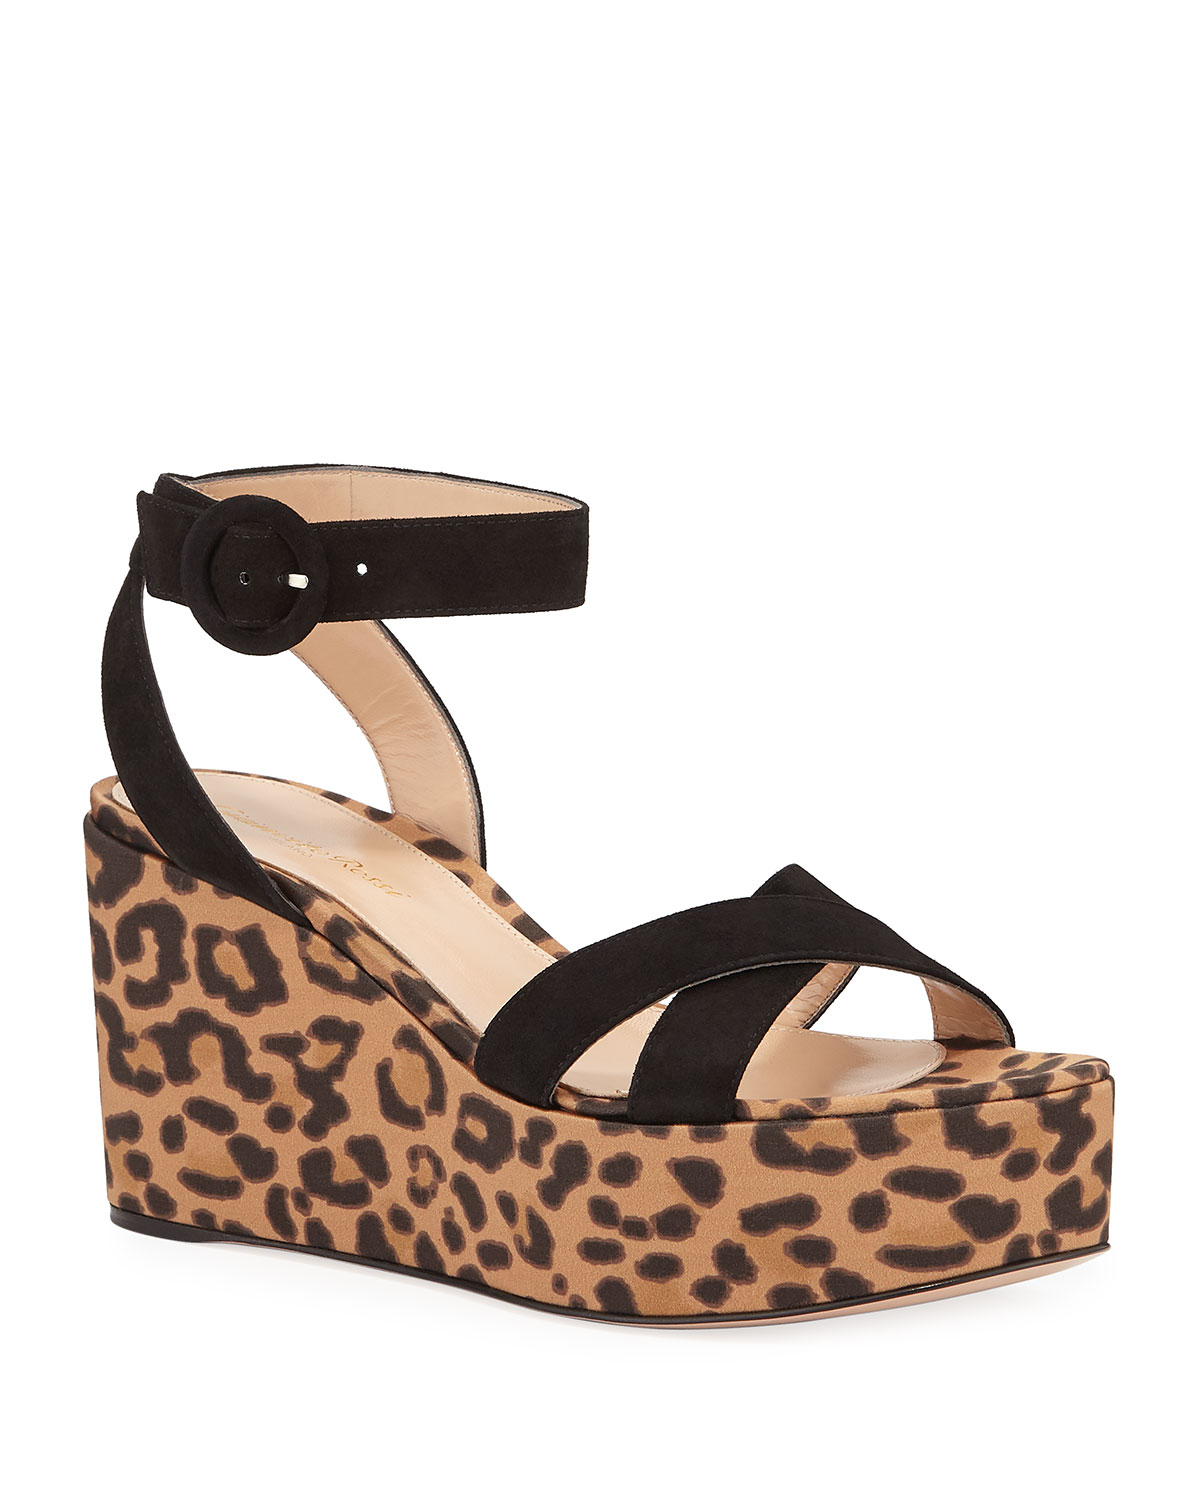 8d0bc01f7384 Gianvito Rossi Leopard Satin Wedge Sandals